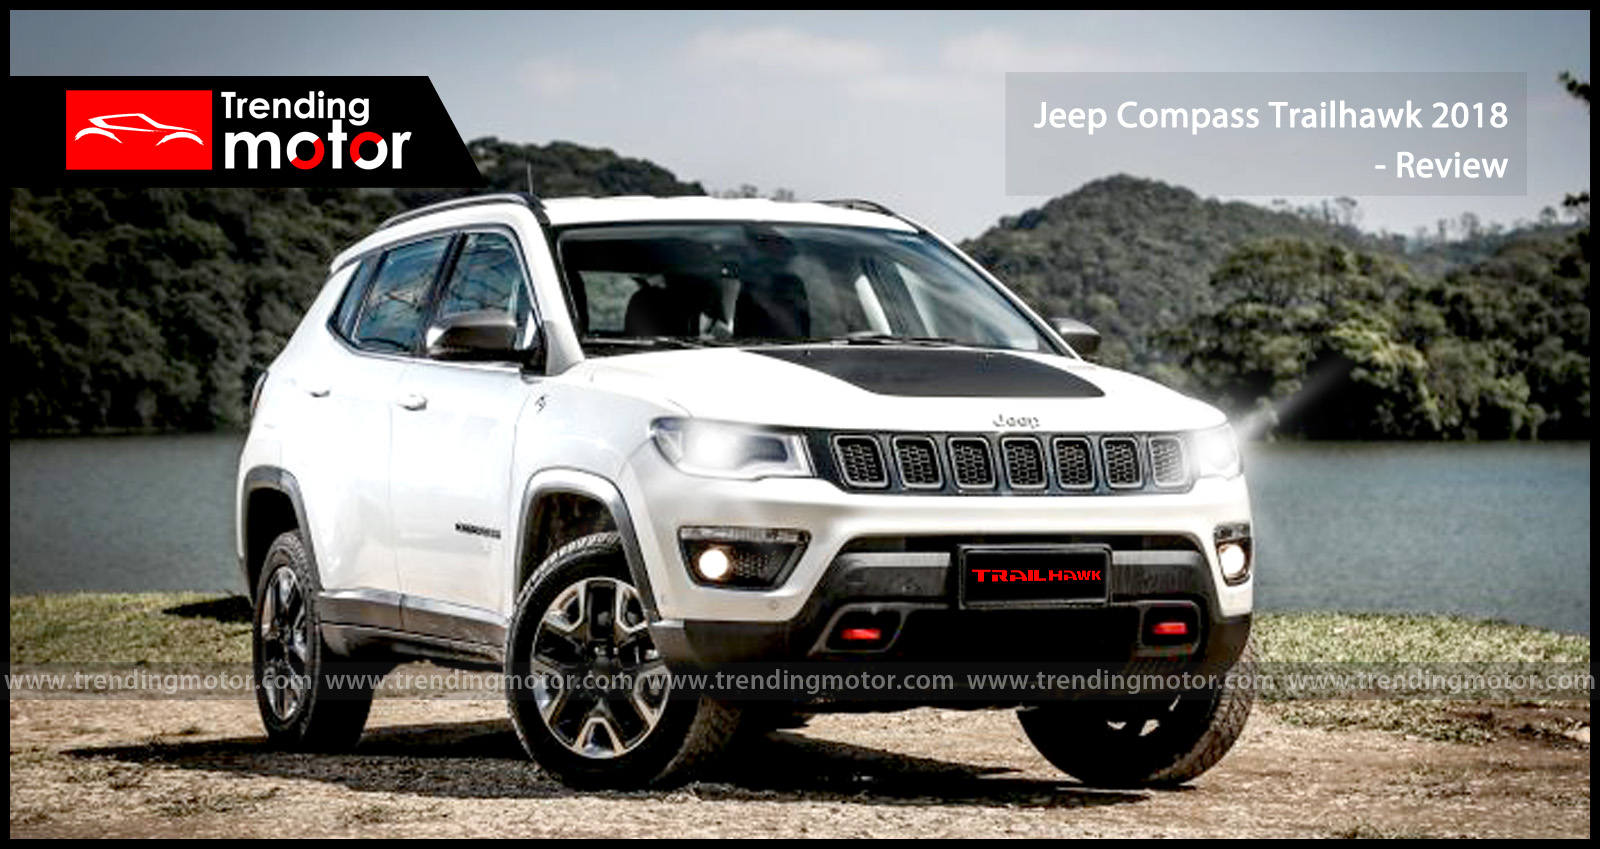 Jeep Compass Trailhawk 2018 Review